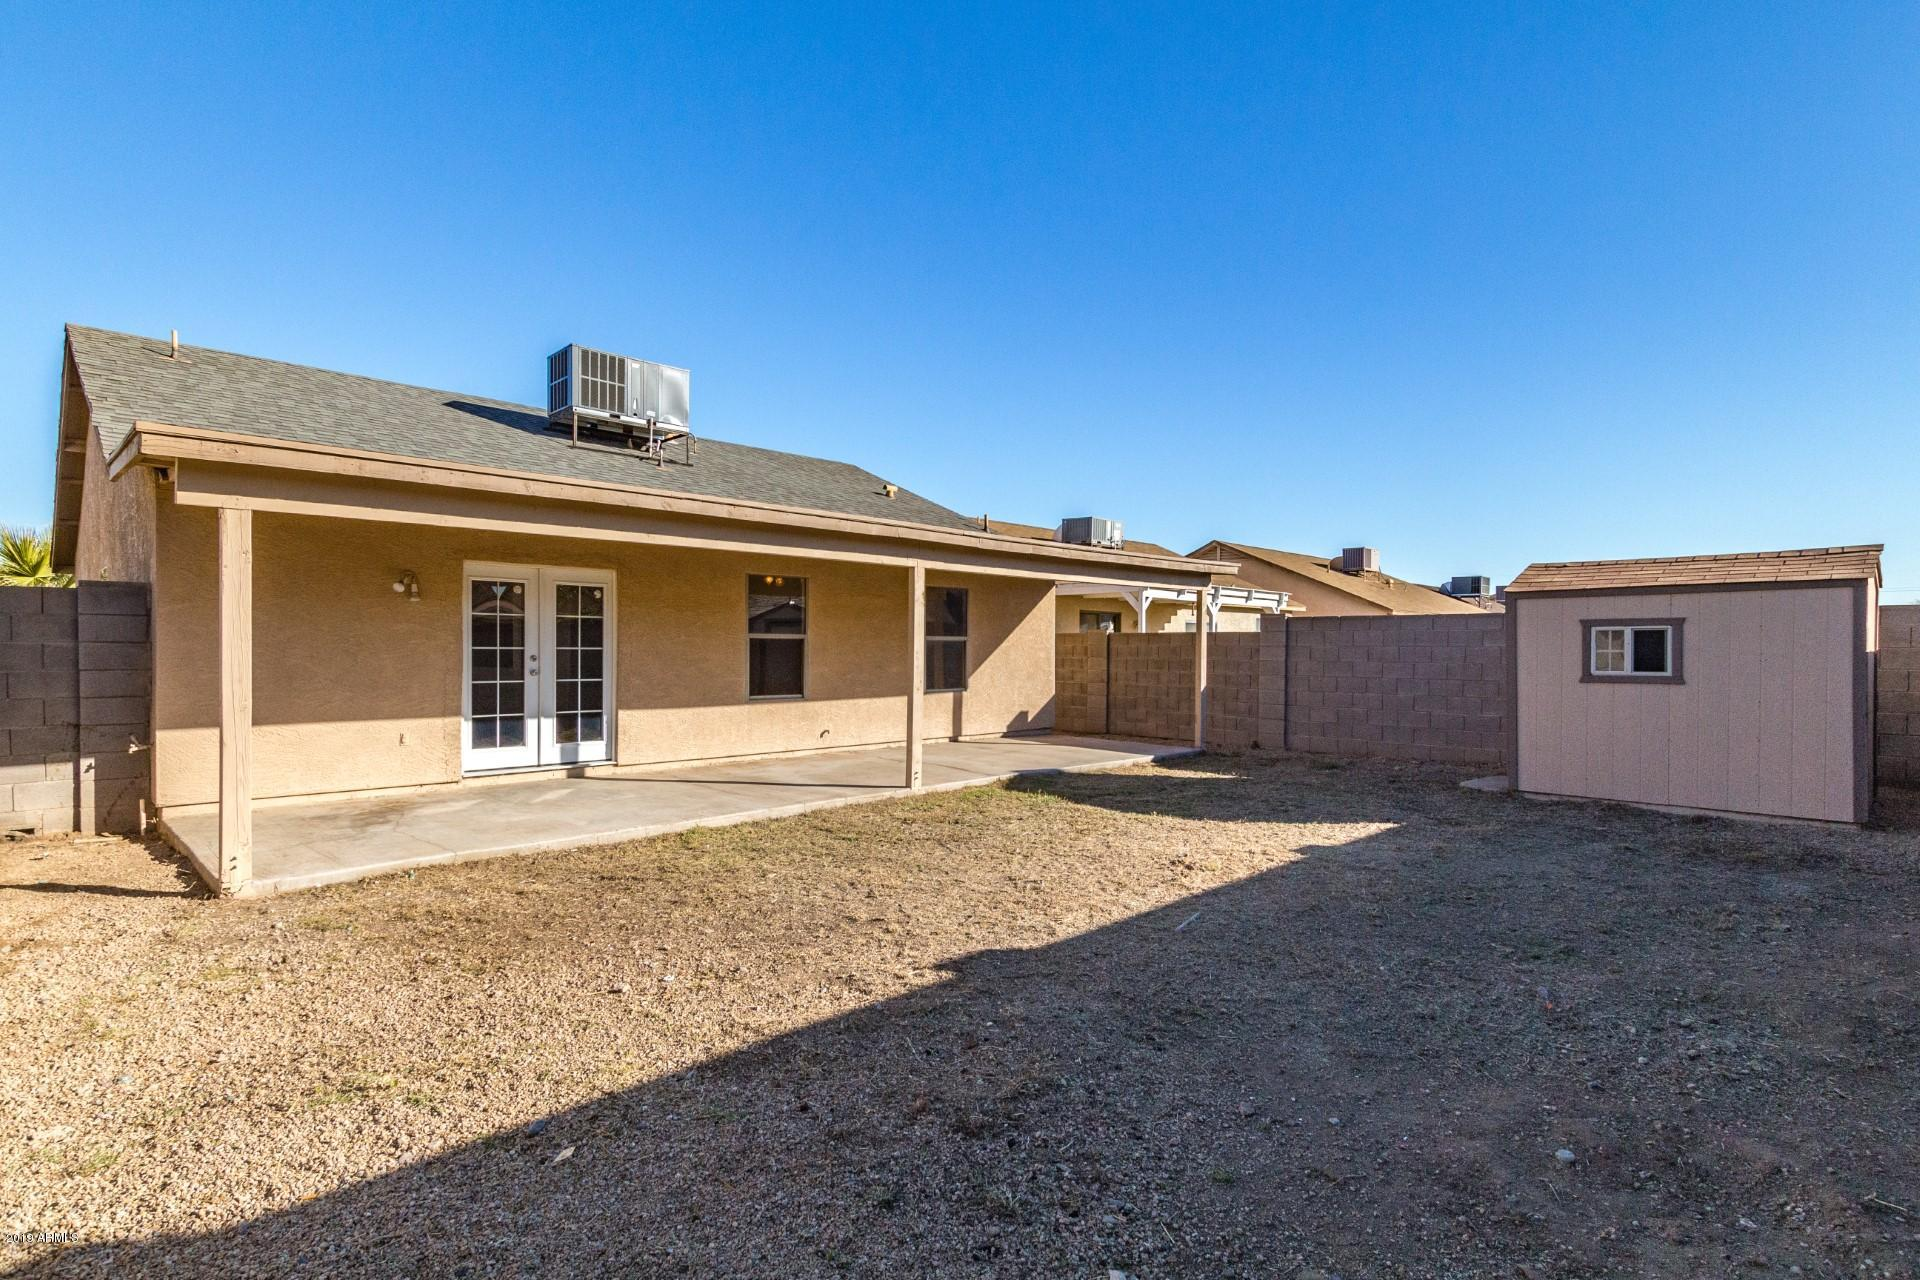 MLS 5862483 11797 W DAHLIA Drive, El Mirage, AZ 85335 El Mirage AZ Arizona Brisas